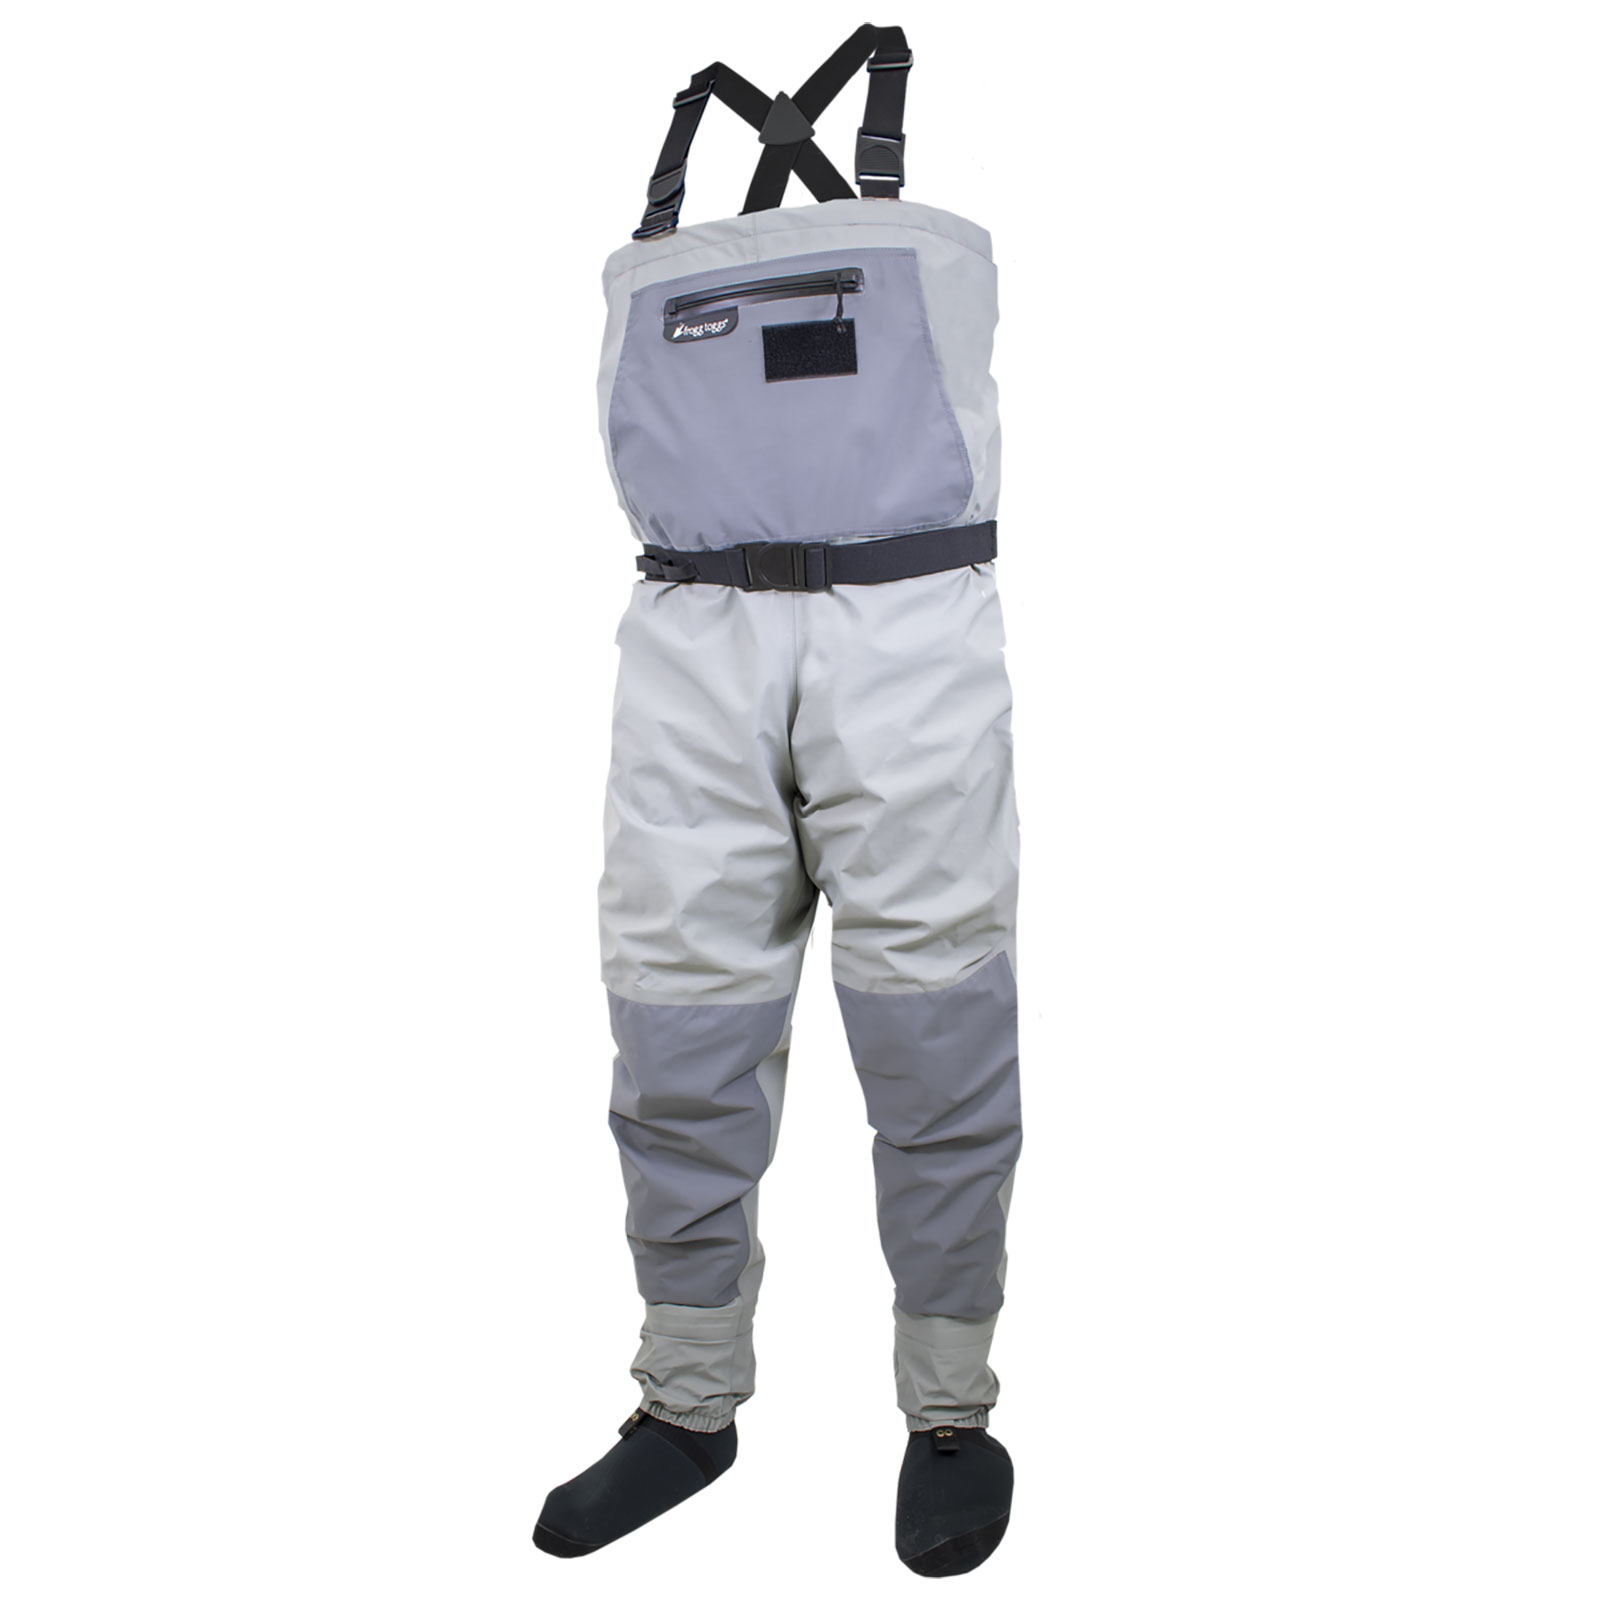 Frogg Toggs Hellbender PRO Stockingfoot Chest Waders